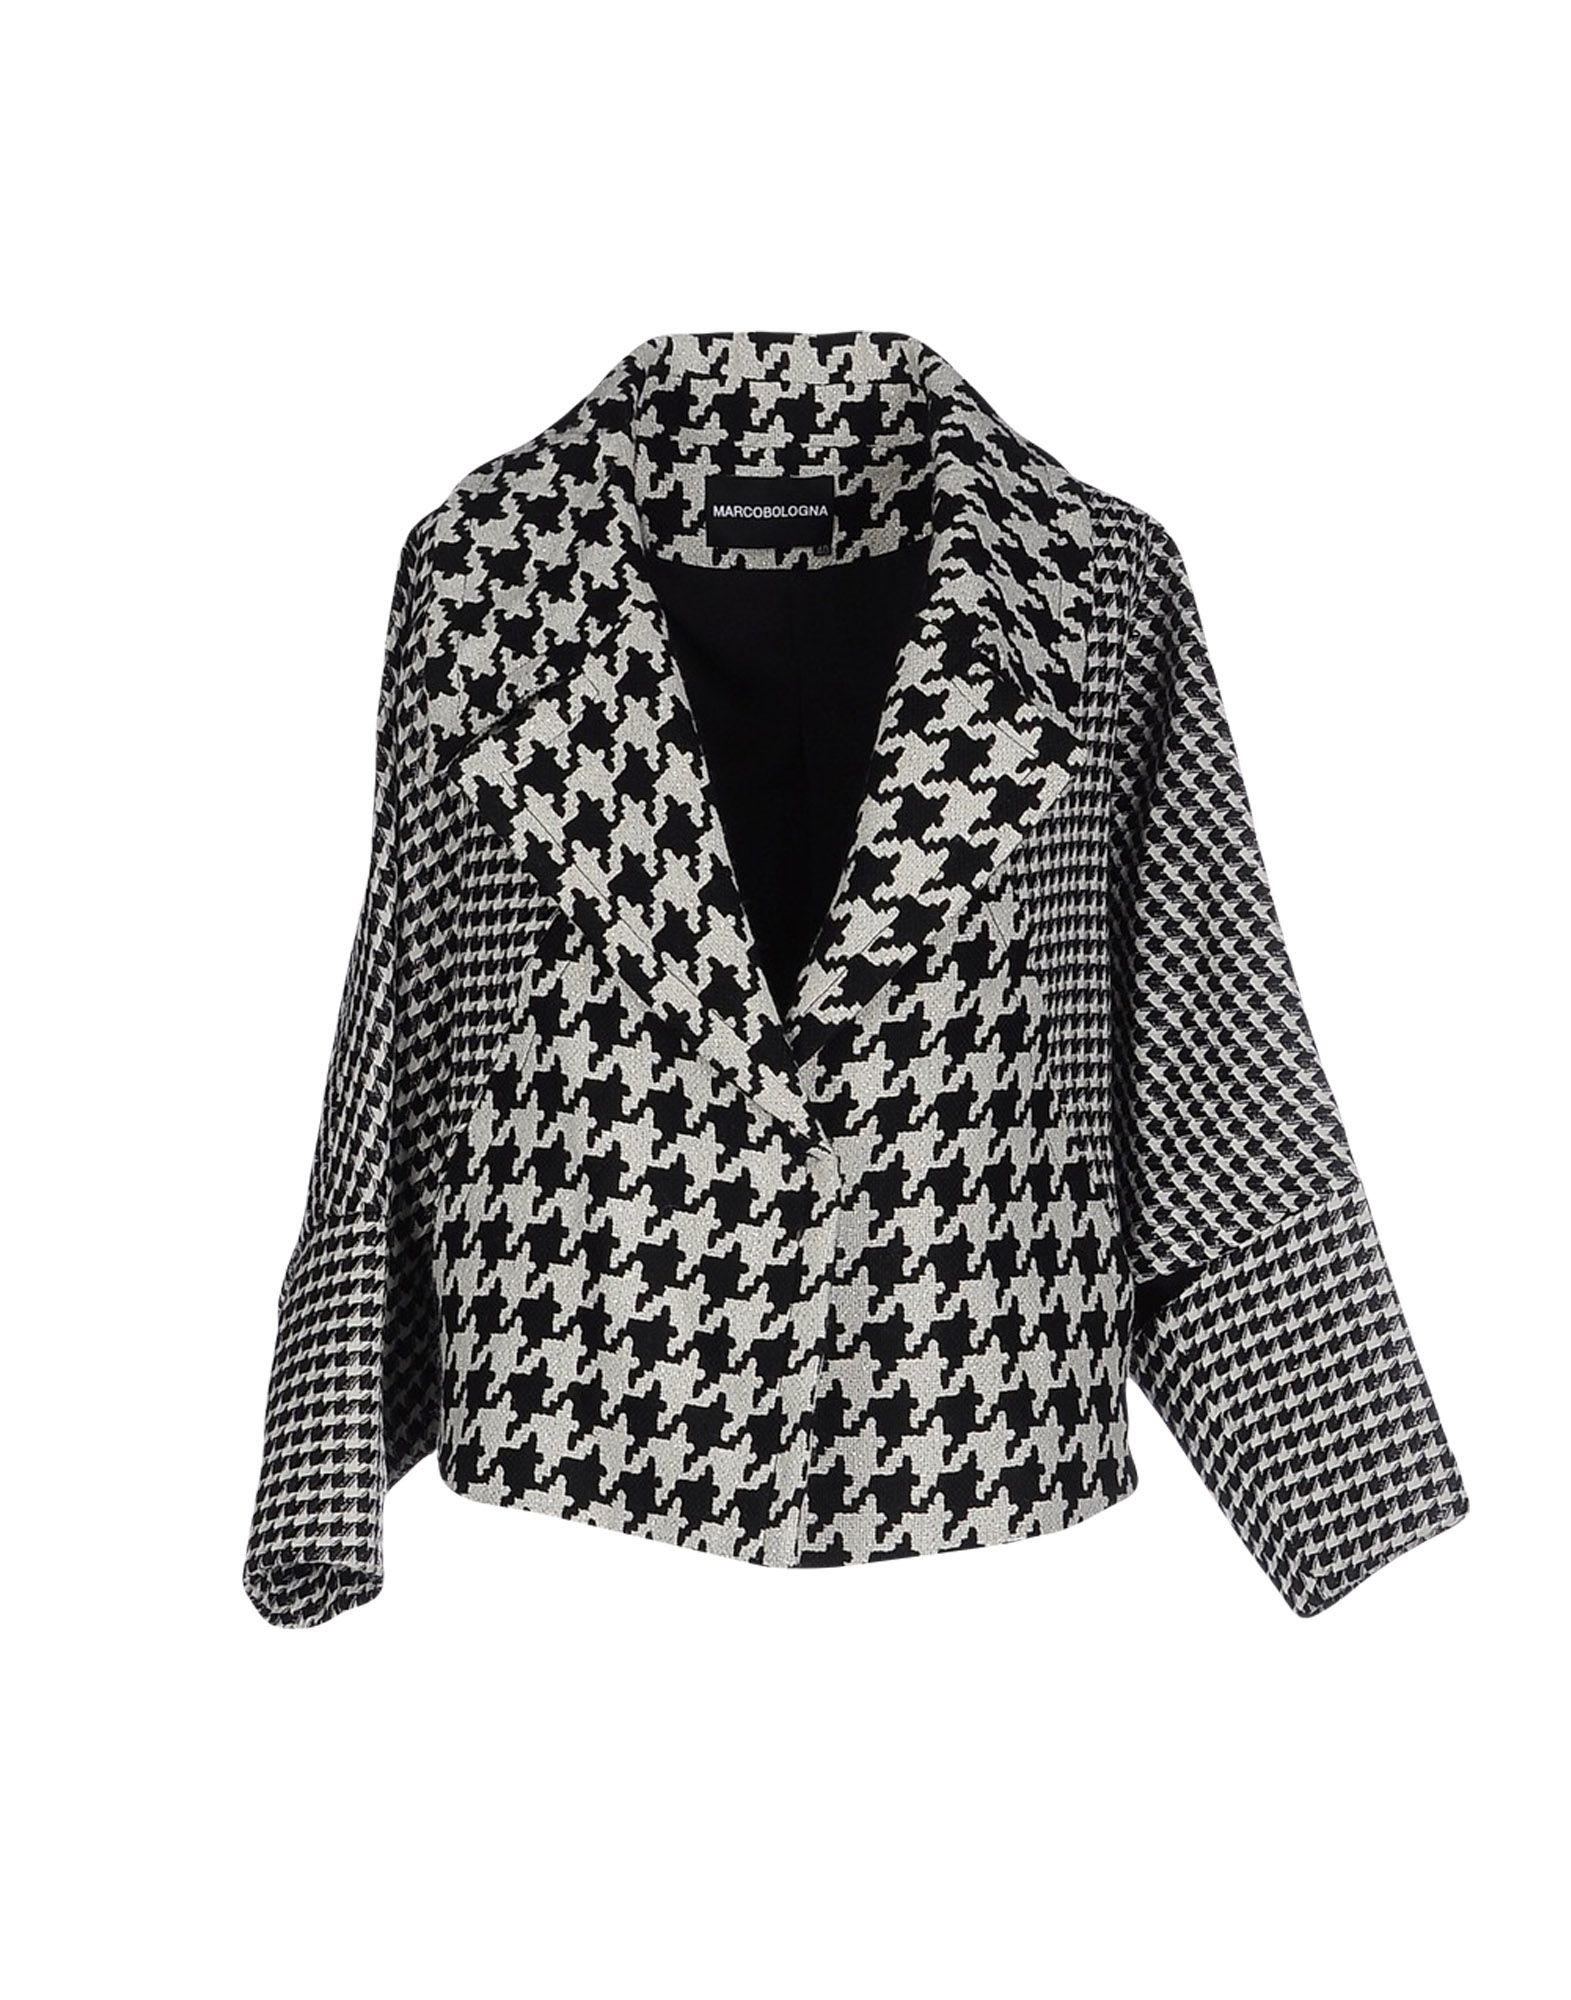 Lyst Marco Bologna Oversized Houndstooth Jacket In Black